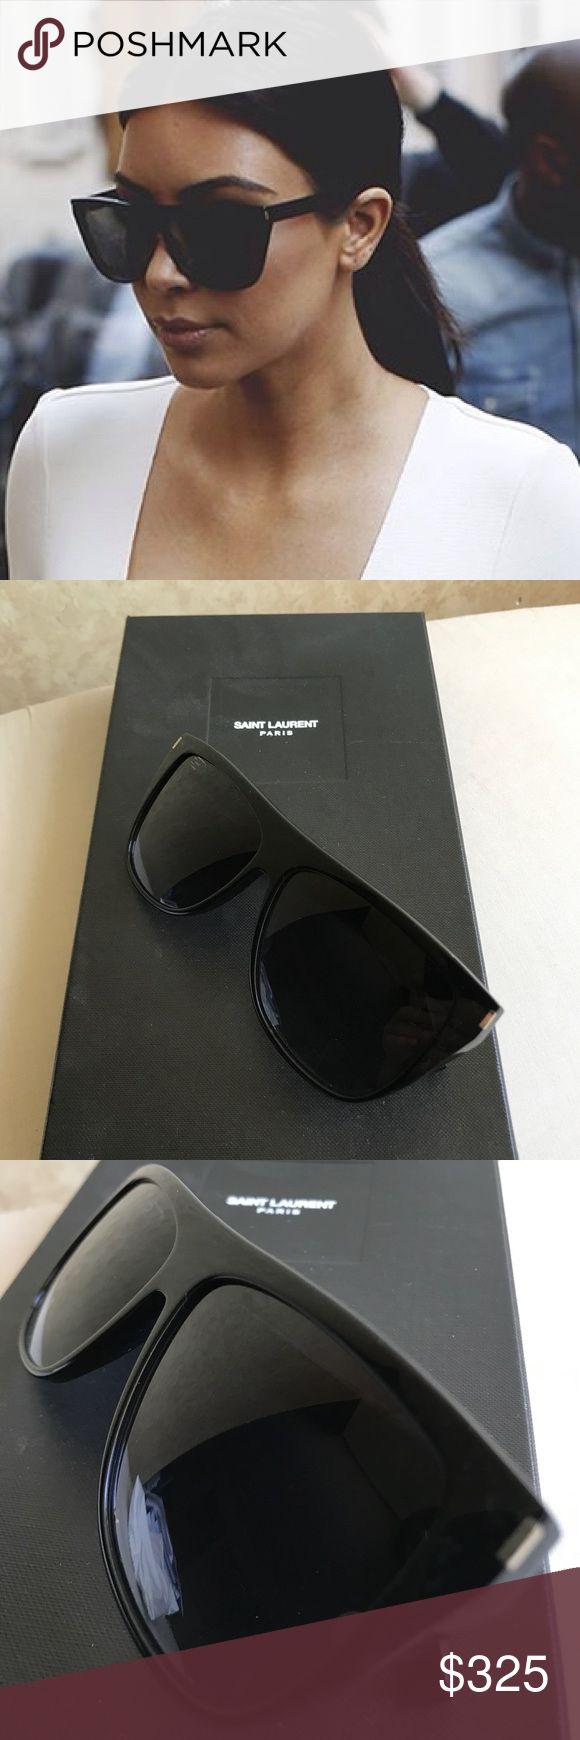 Saint Laurent SL 1 Sunglasses 100% Authentic. I still have the box and all original items that came when I purchased these at the Short Hills Mall in NJ. I took a pic of the receipt as shown. In good condition, worn multiple times. I never wear these anymore. They seem to be crooked on my head... can be fixed if brought to a sunglasses store but I don't bother because I have other pairs I like more. (First image from the Internet) Saint Laurent Accessories Sunglasses